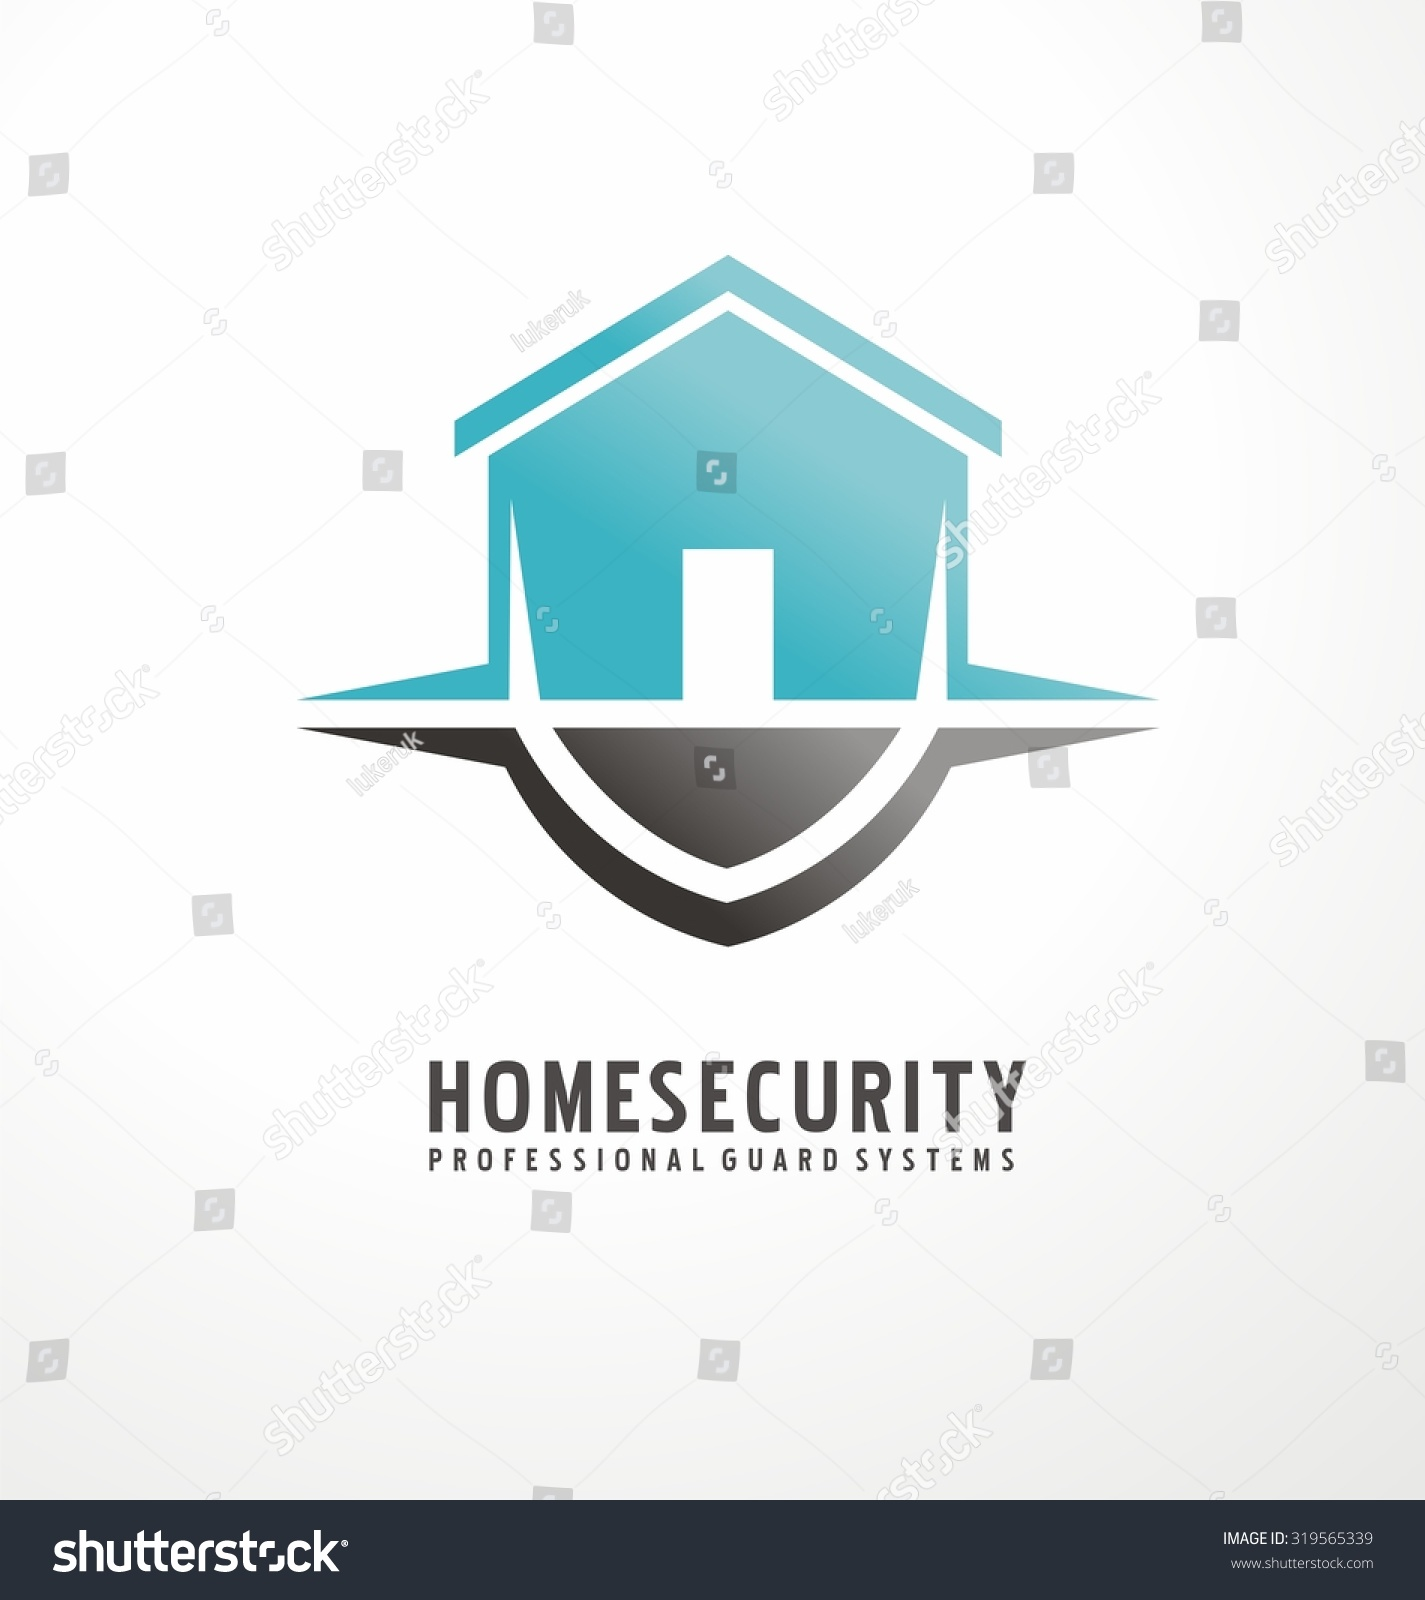 creative logo design with house shape as part of the